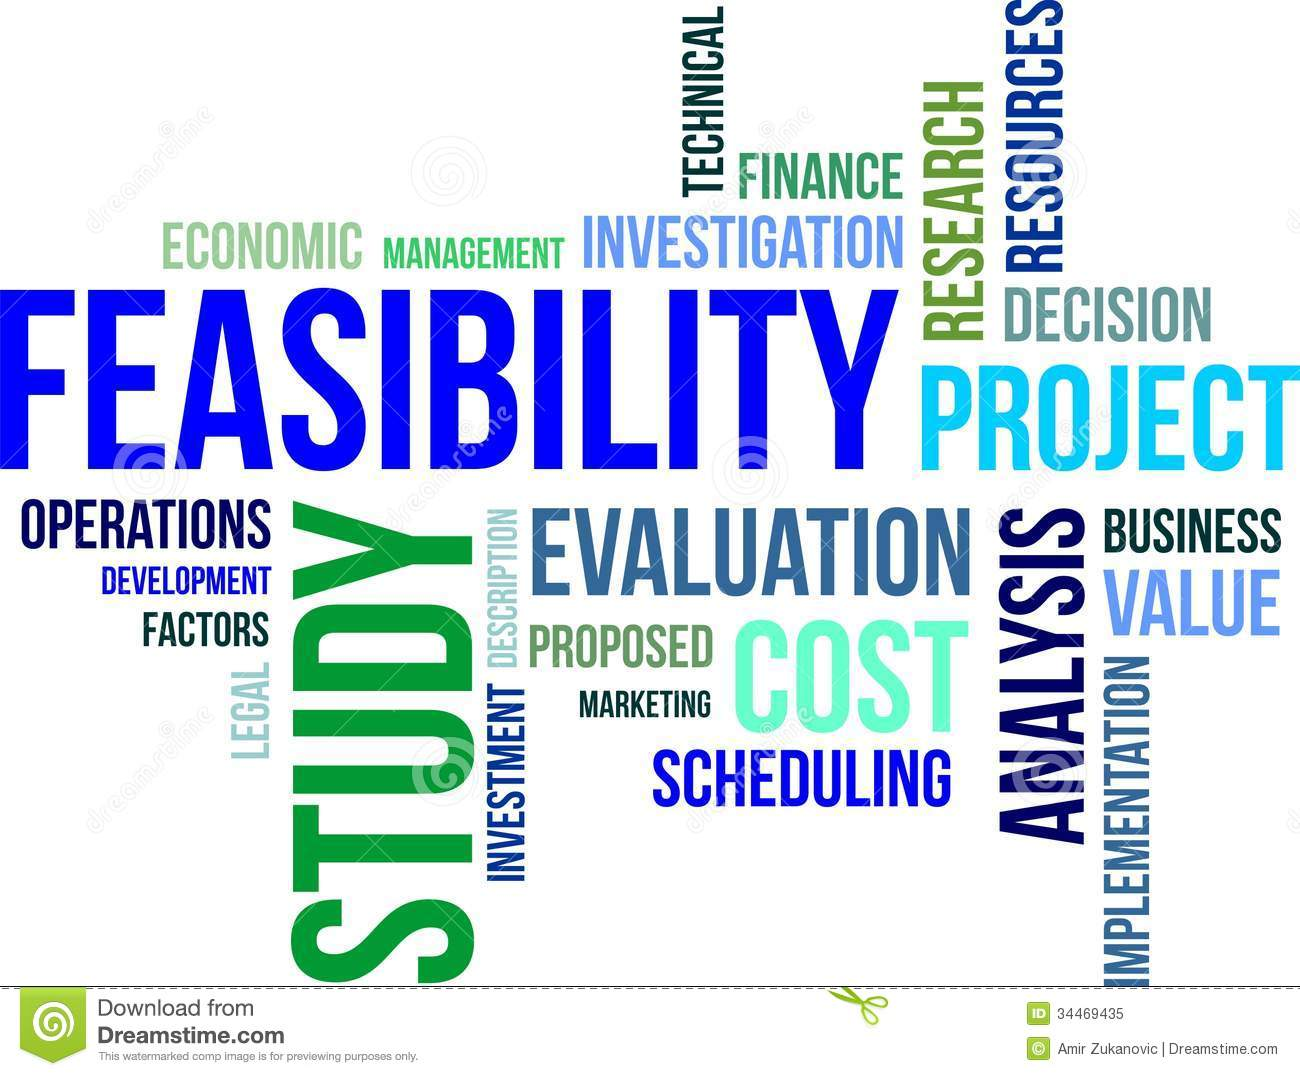 management feasibility Simply put, a feasibility study in project management is used to find out if a project is feasible prior to investing real resources and dollars often, project managers are hired to complete studies for clients to determine if a proposed venture will be profitable as well as what risks it will encounter.